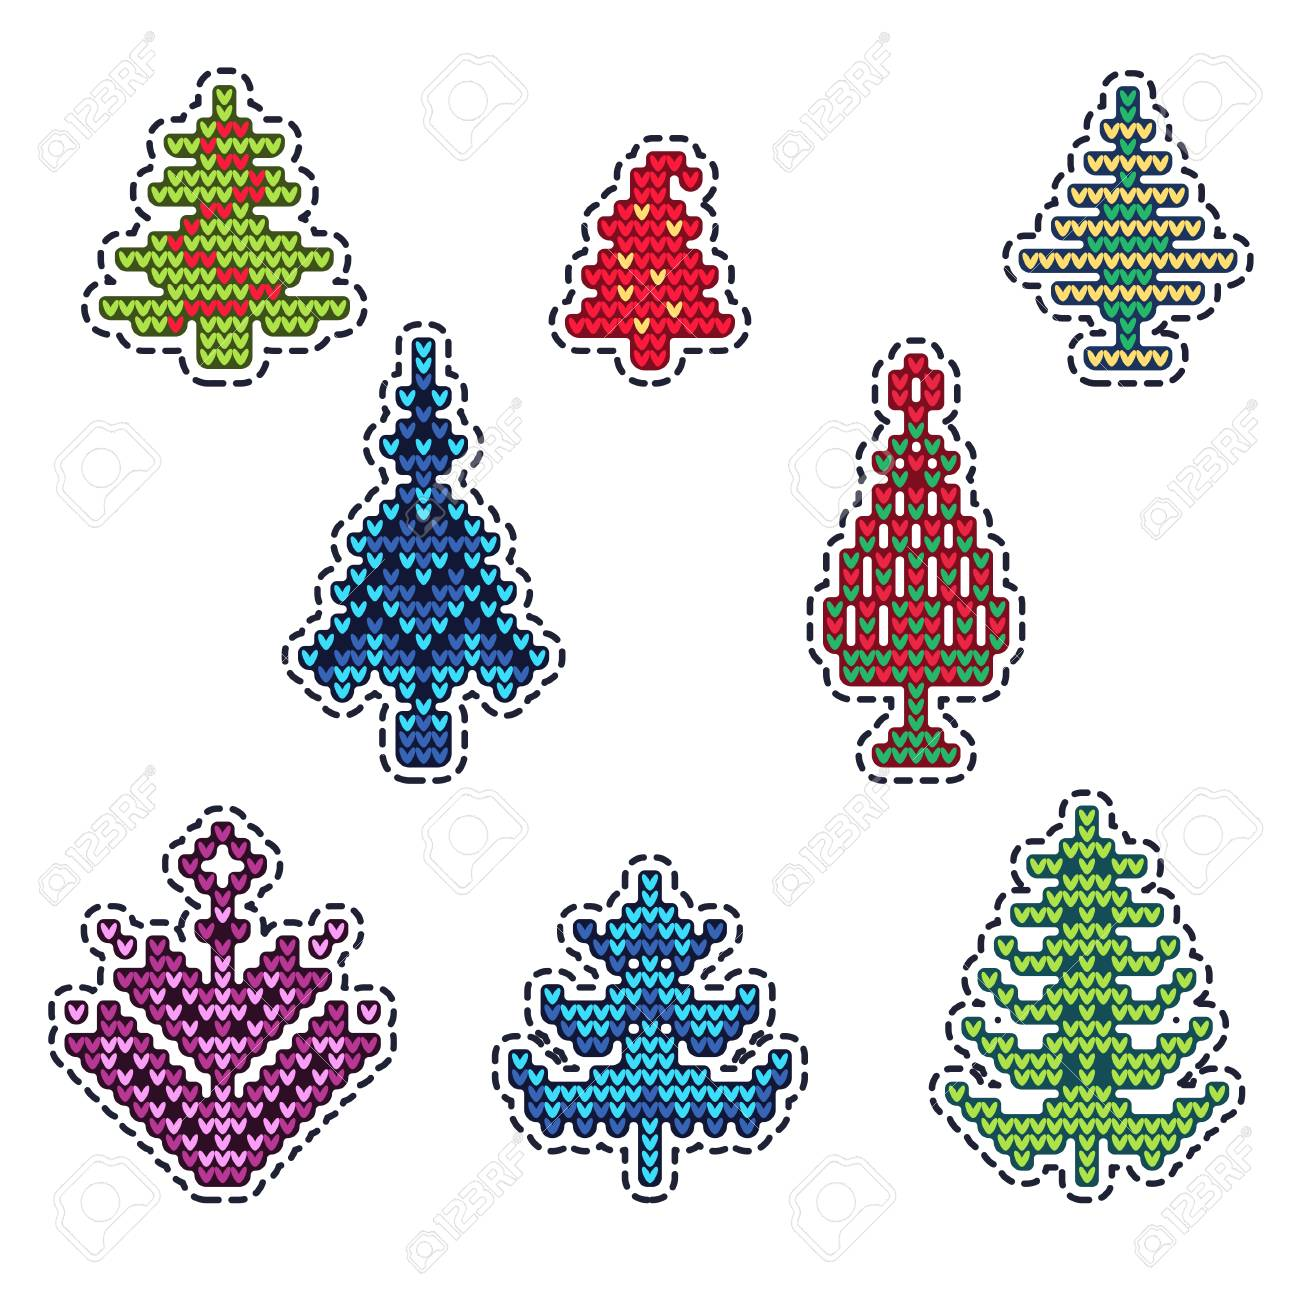 Vector Illustration Of Ugly Sweater Xmas Patches Elements For Royalty Free Cliparts Vectors And Stock Illustration Image 68036997